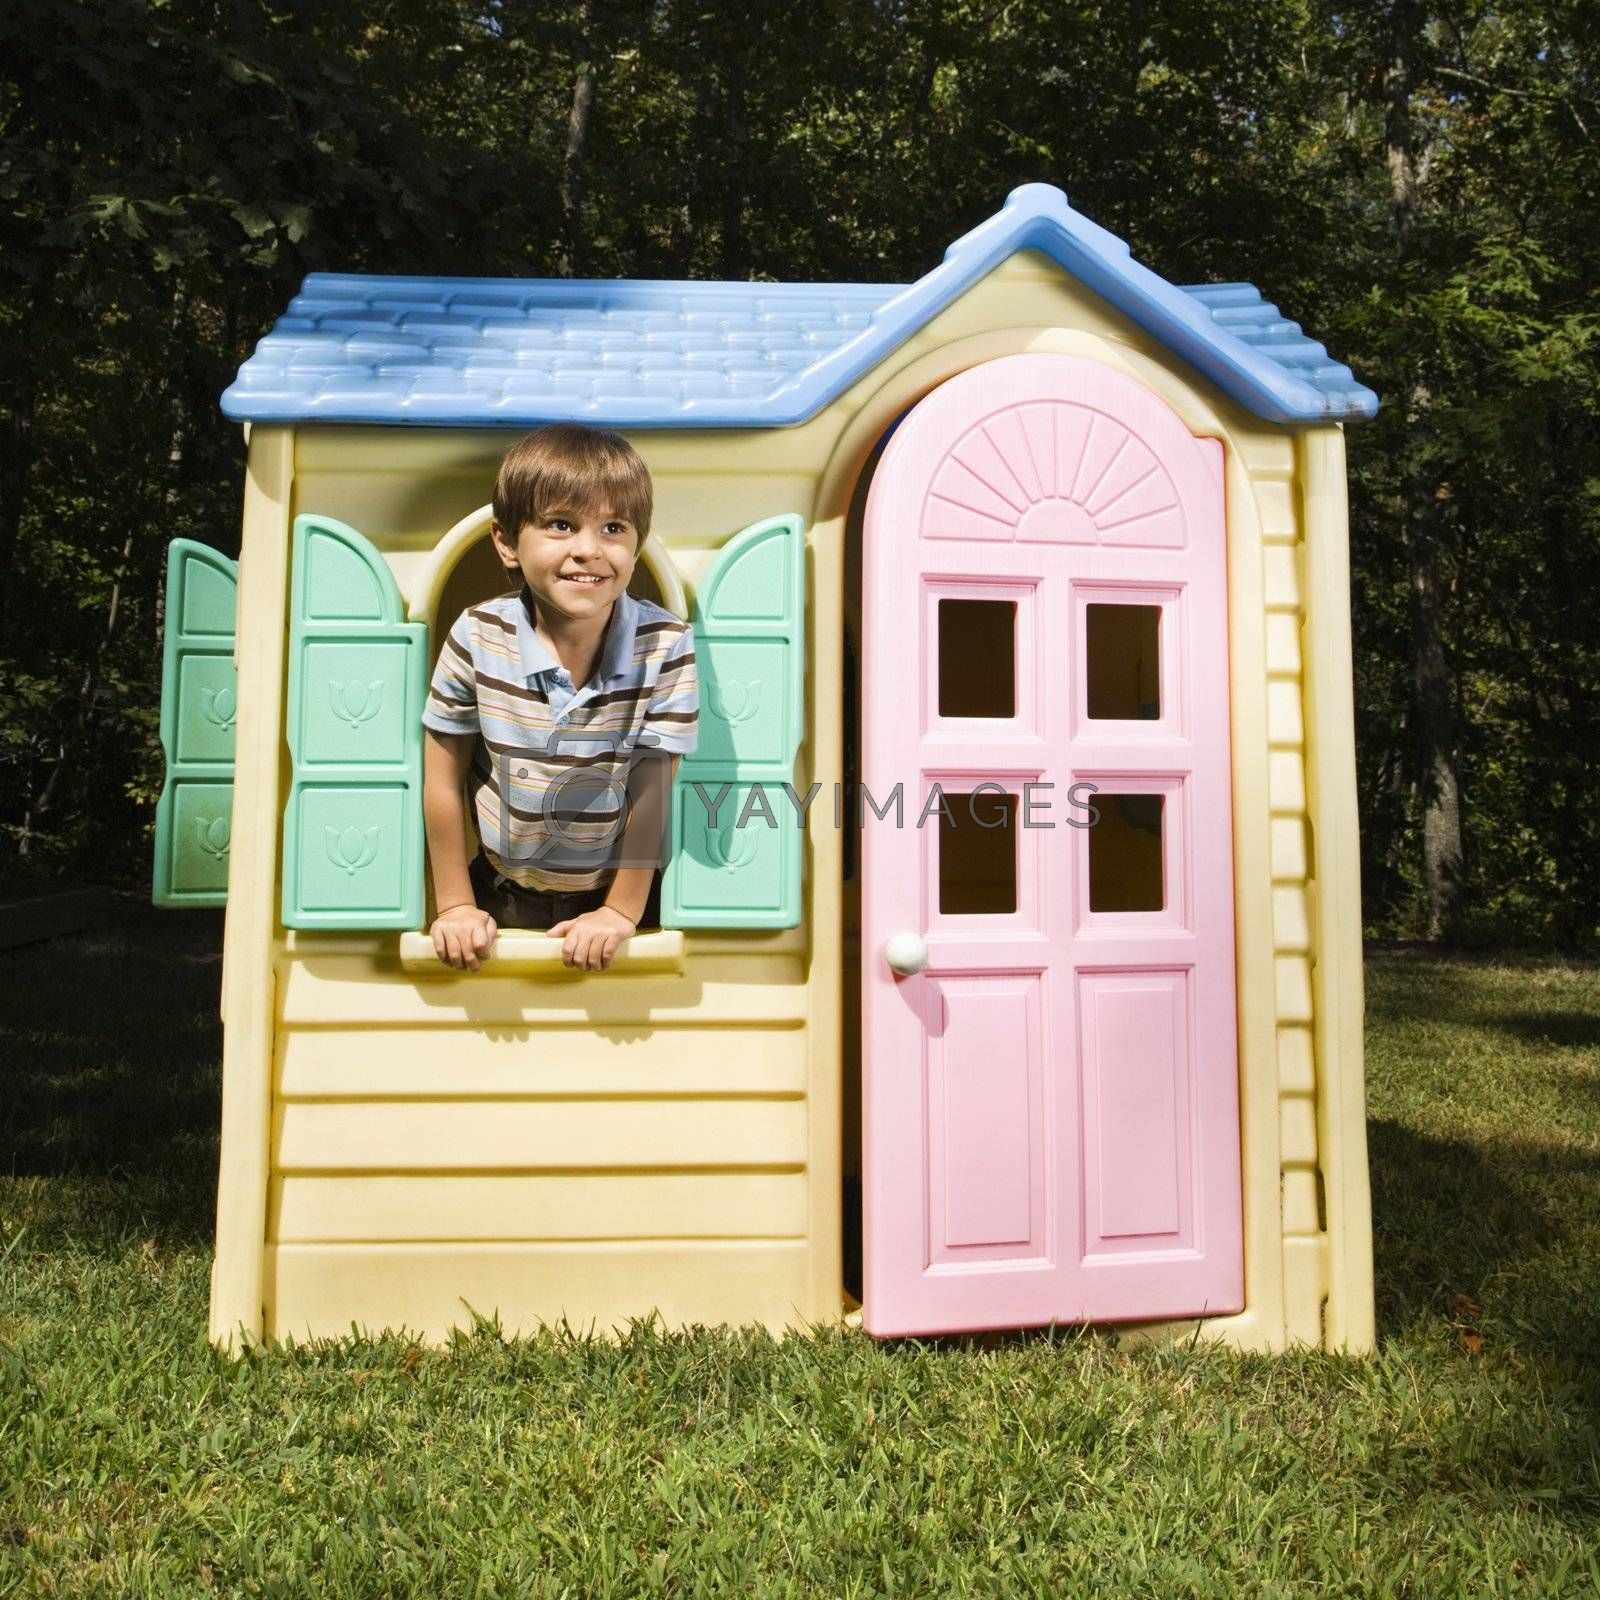 Hispanic boy in window of outdoor playhouse smiling at viewer.